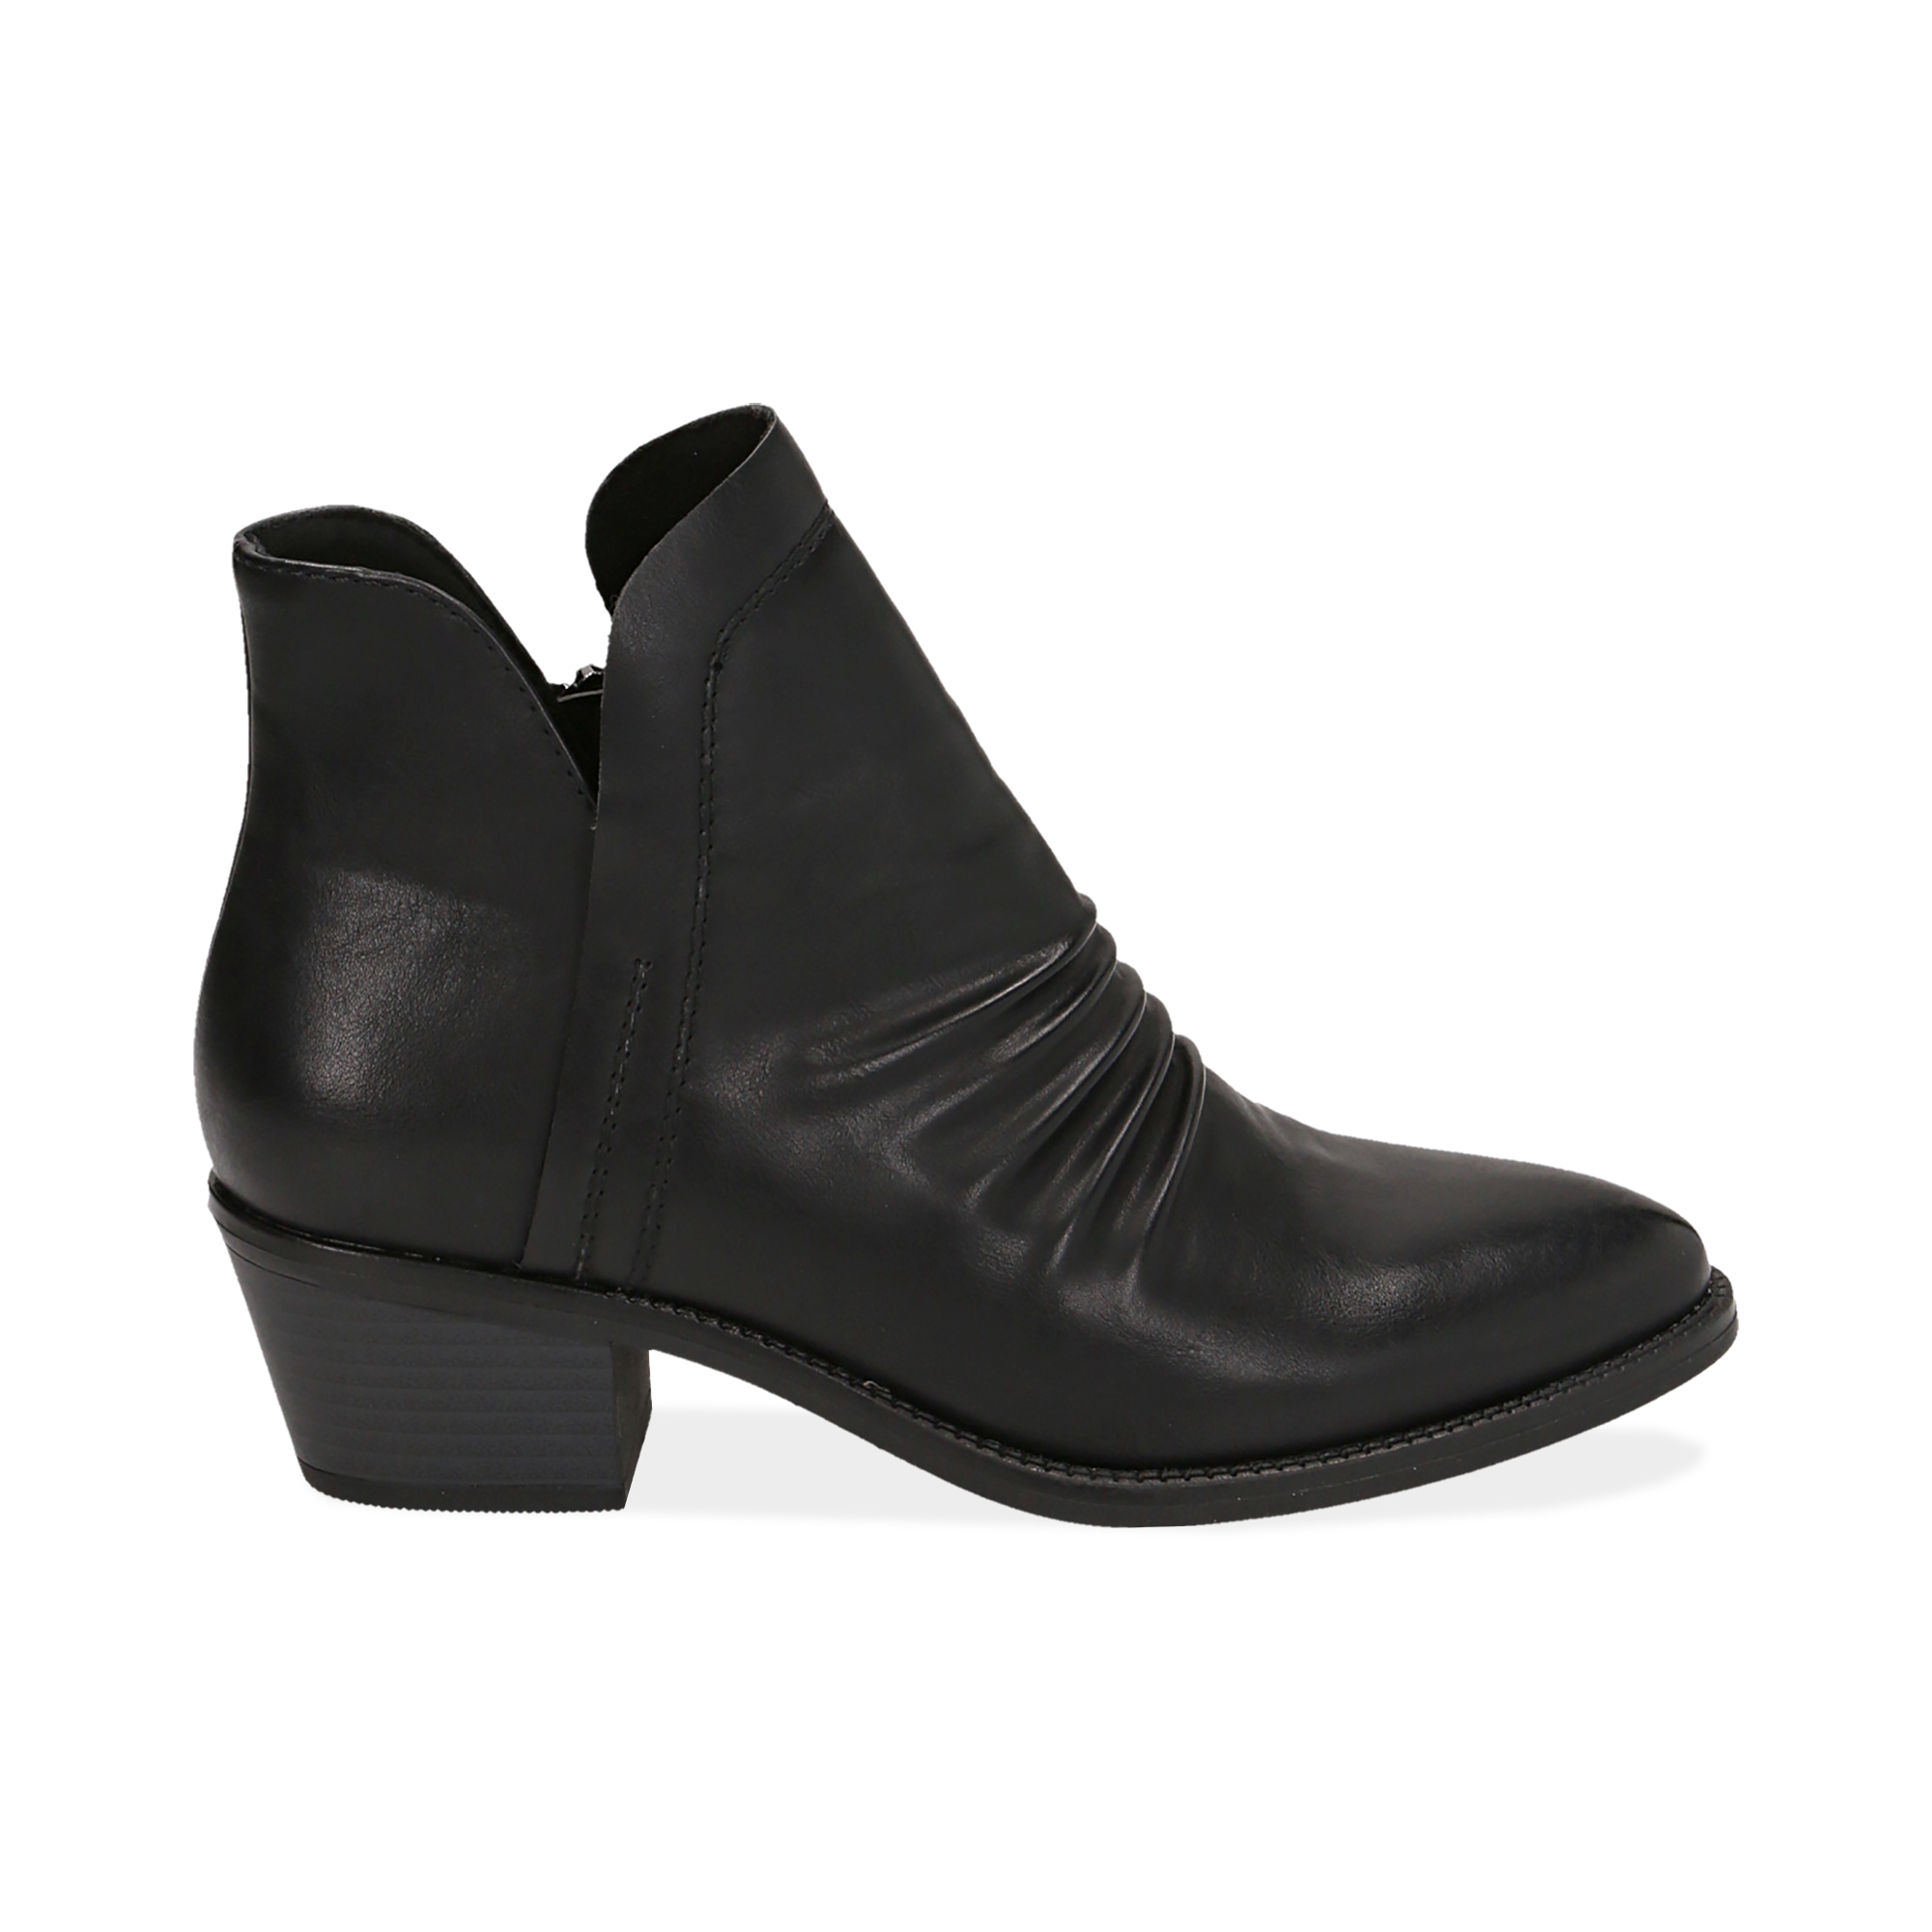 Ankle boots neri in eco-pelle, tacco 4,50 cm